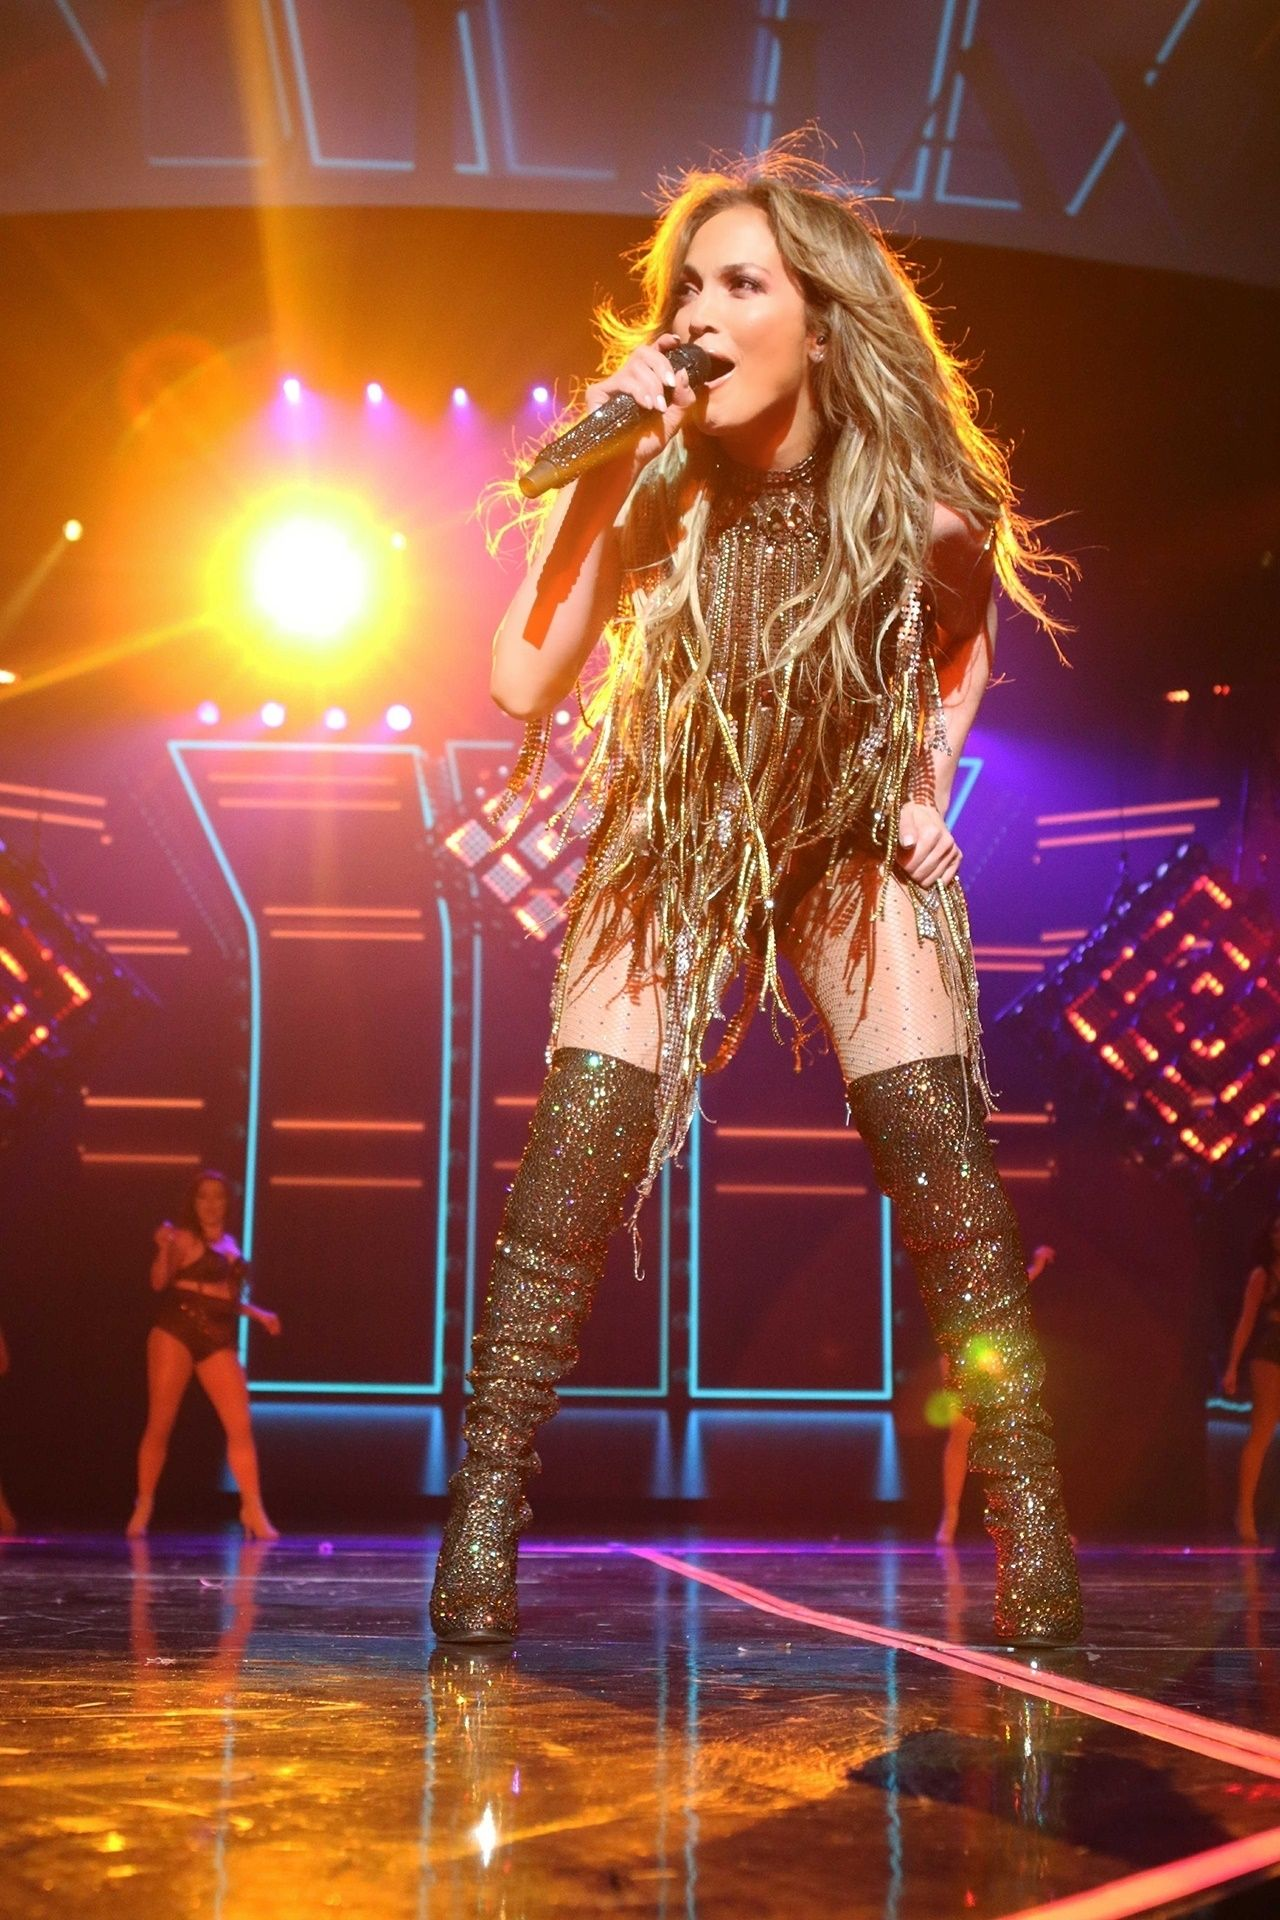 Jennifer Lopez Performs Live At The Axis In Planet